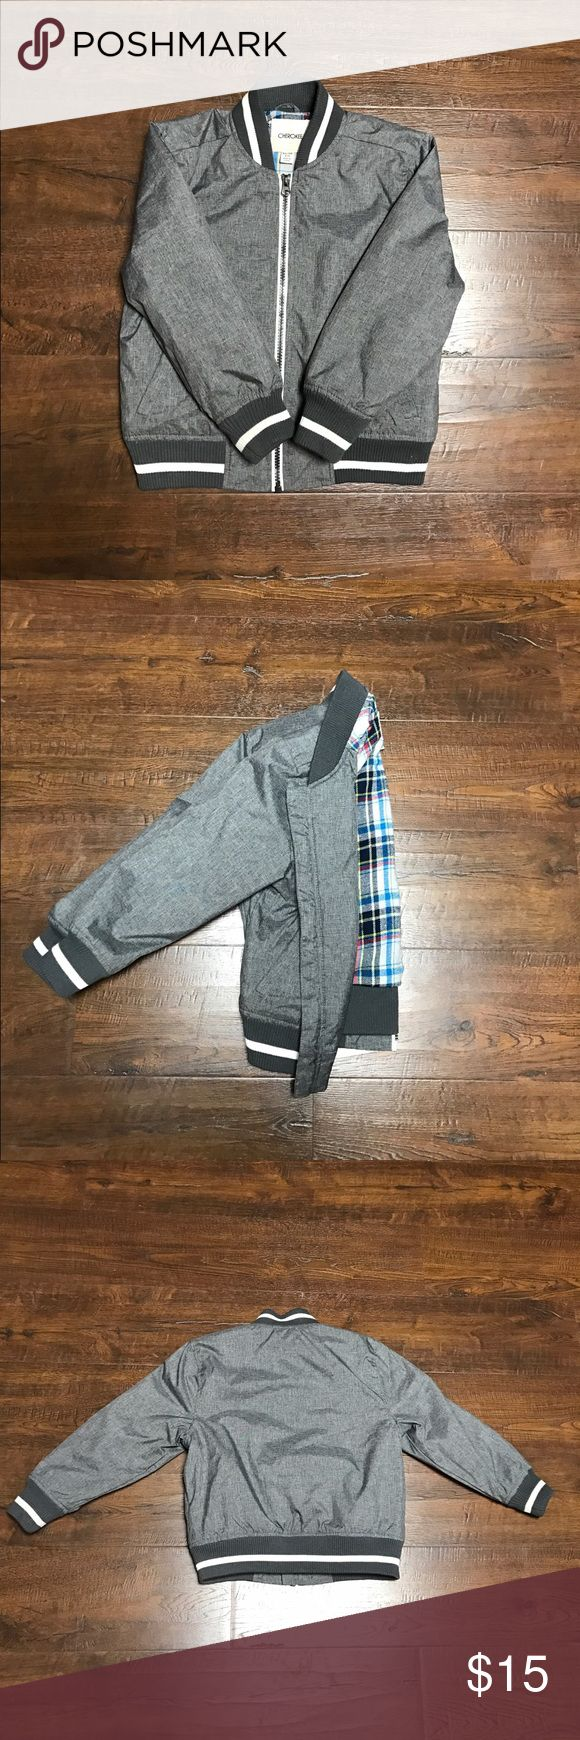 Grey bomber jacket Grey bomber jacket with flannel interior. Excellent Condition Jackets & Coats Puffers